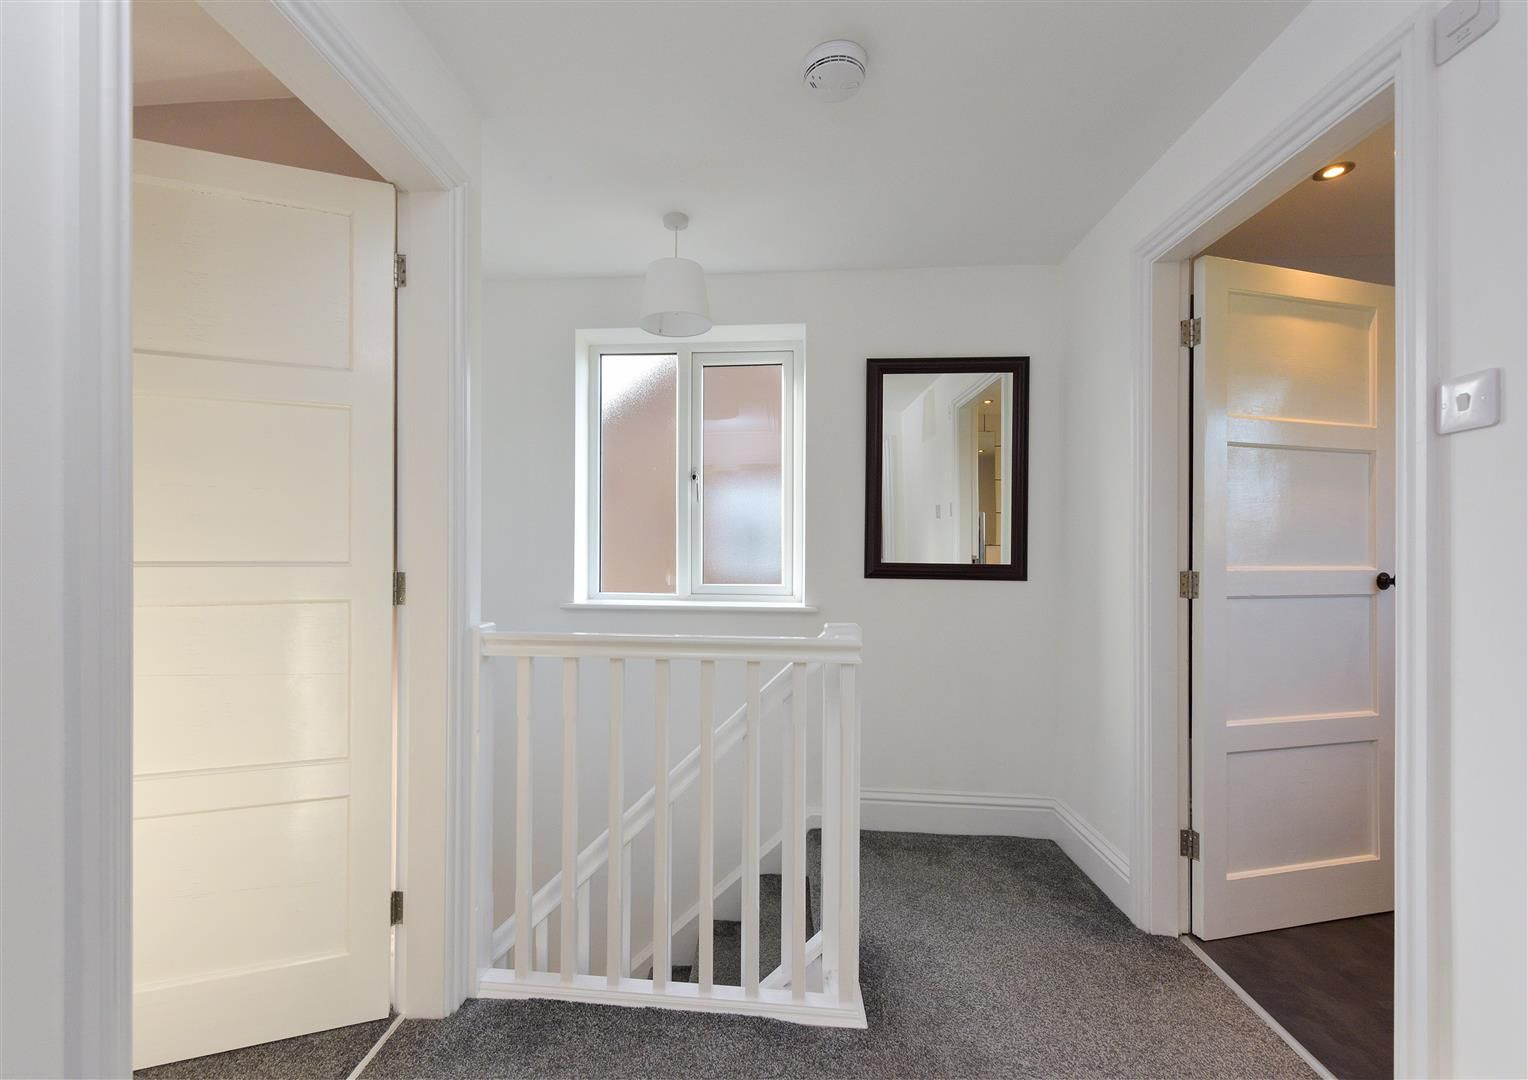 3 bed house for sale in Clent 19